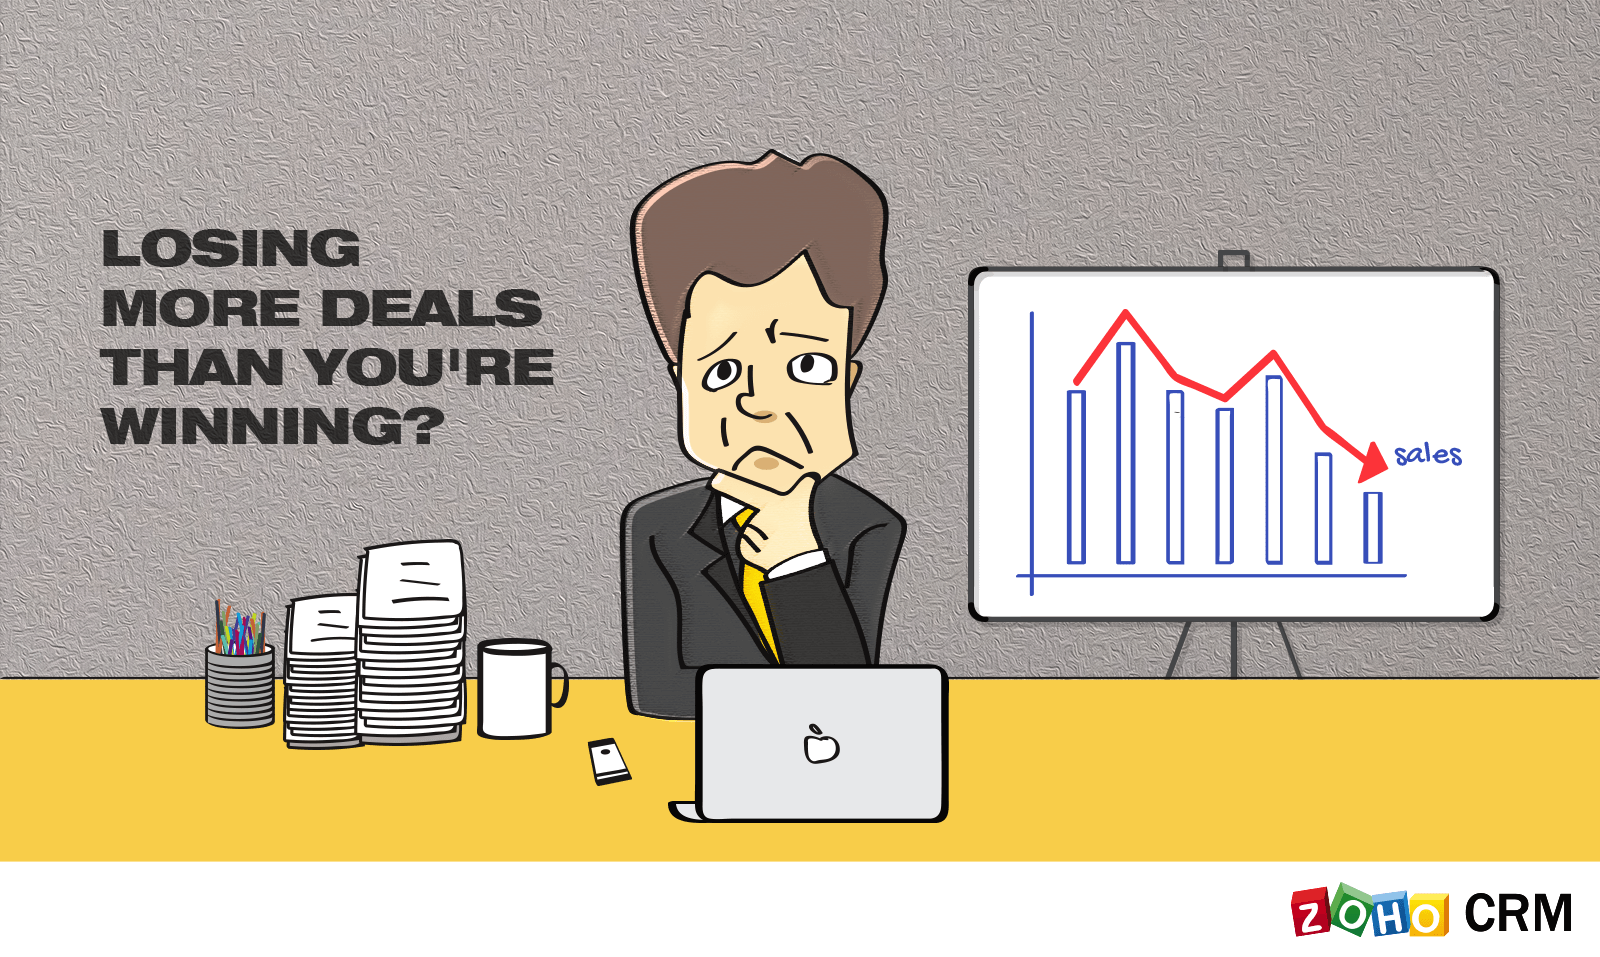 Losing More Deals Than You're Winning? The Problem Could Lie with Your Process, not Your People